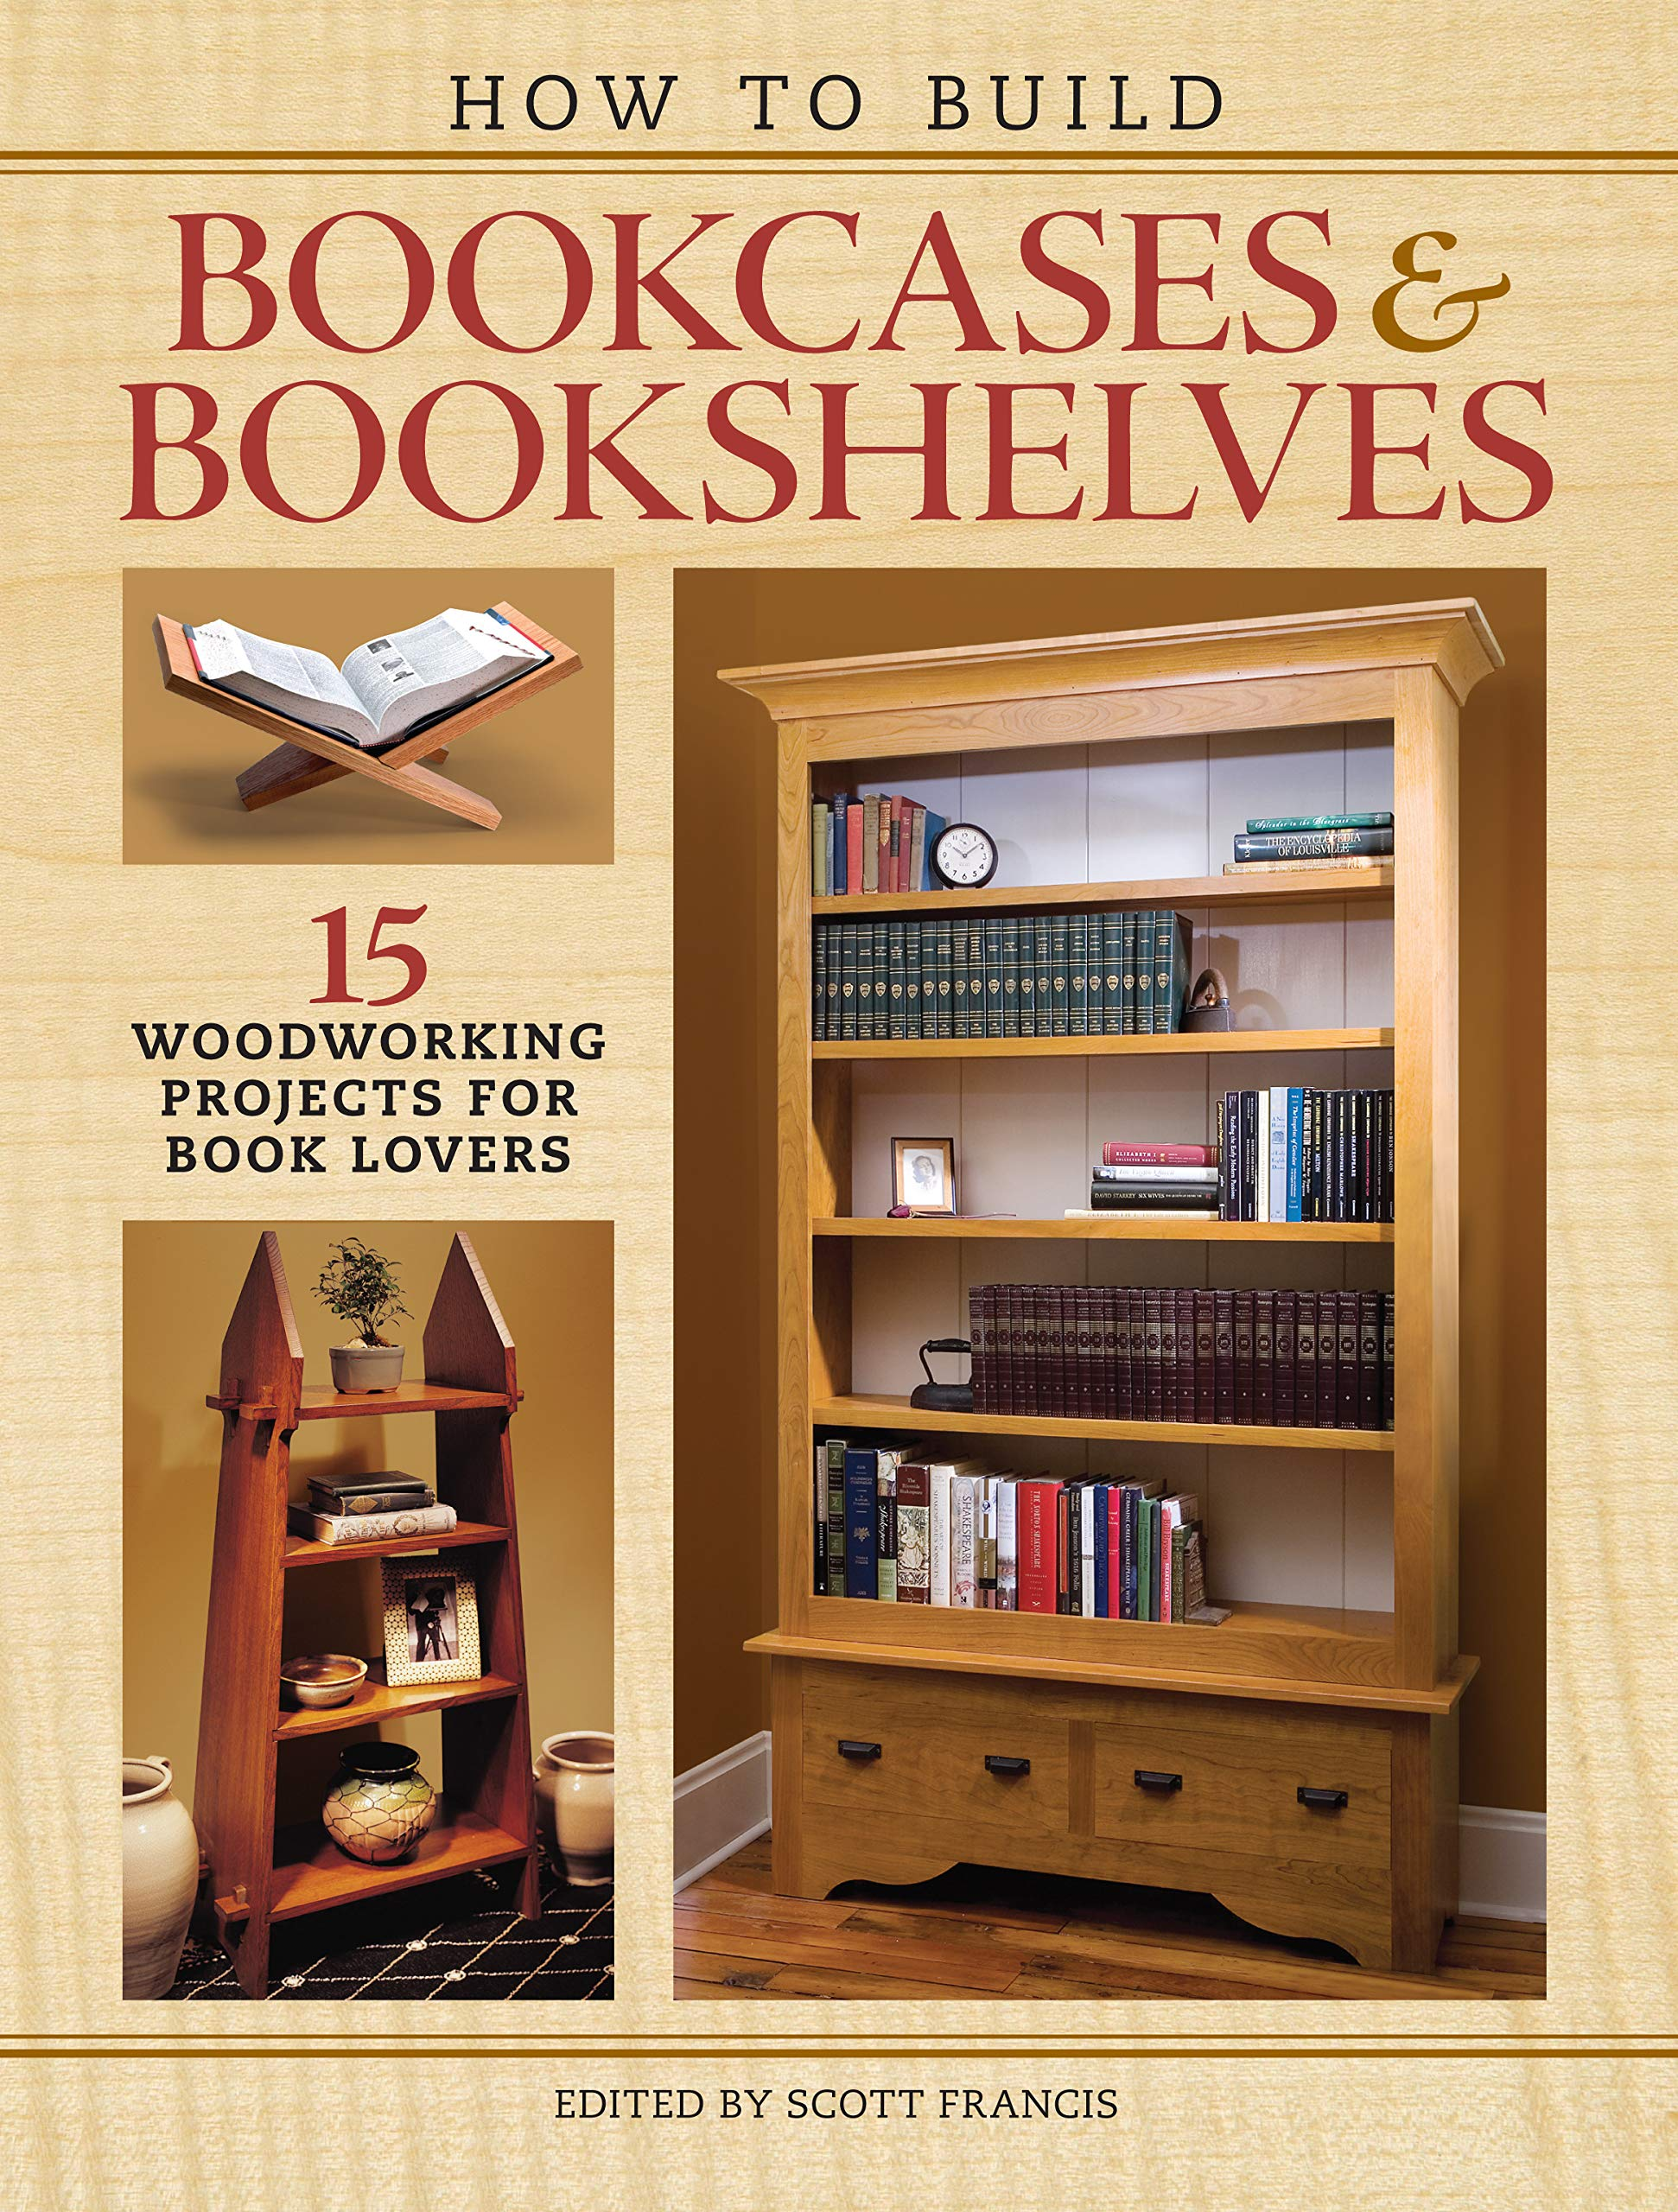 How To Build Bookcases & Bookshelves: 15 Woodworking